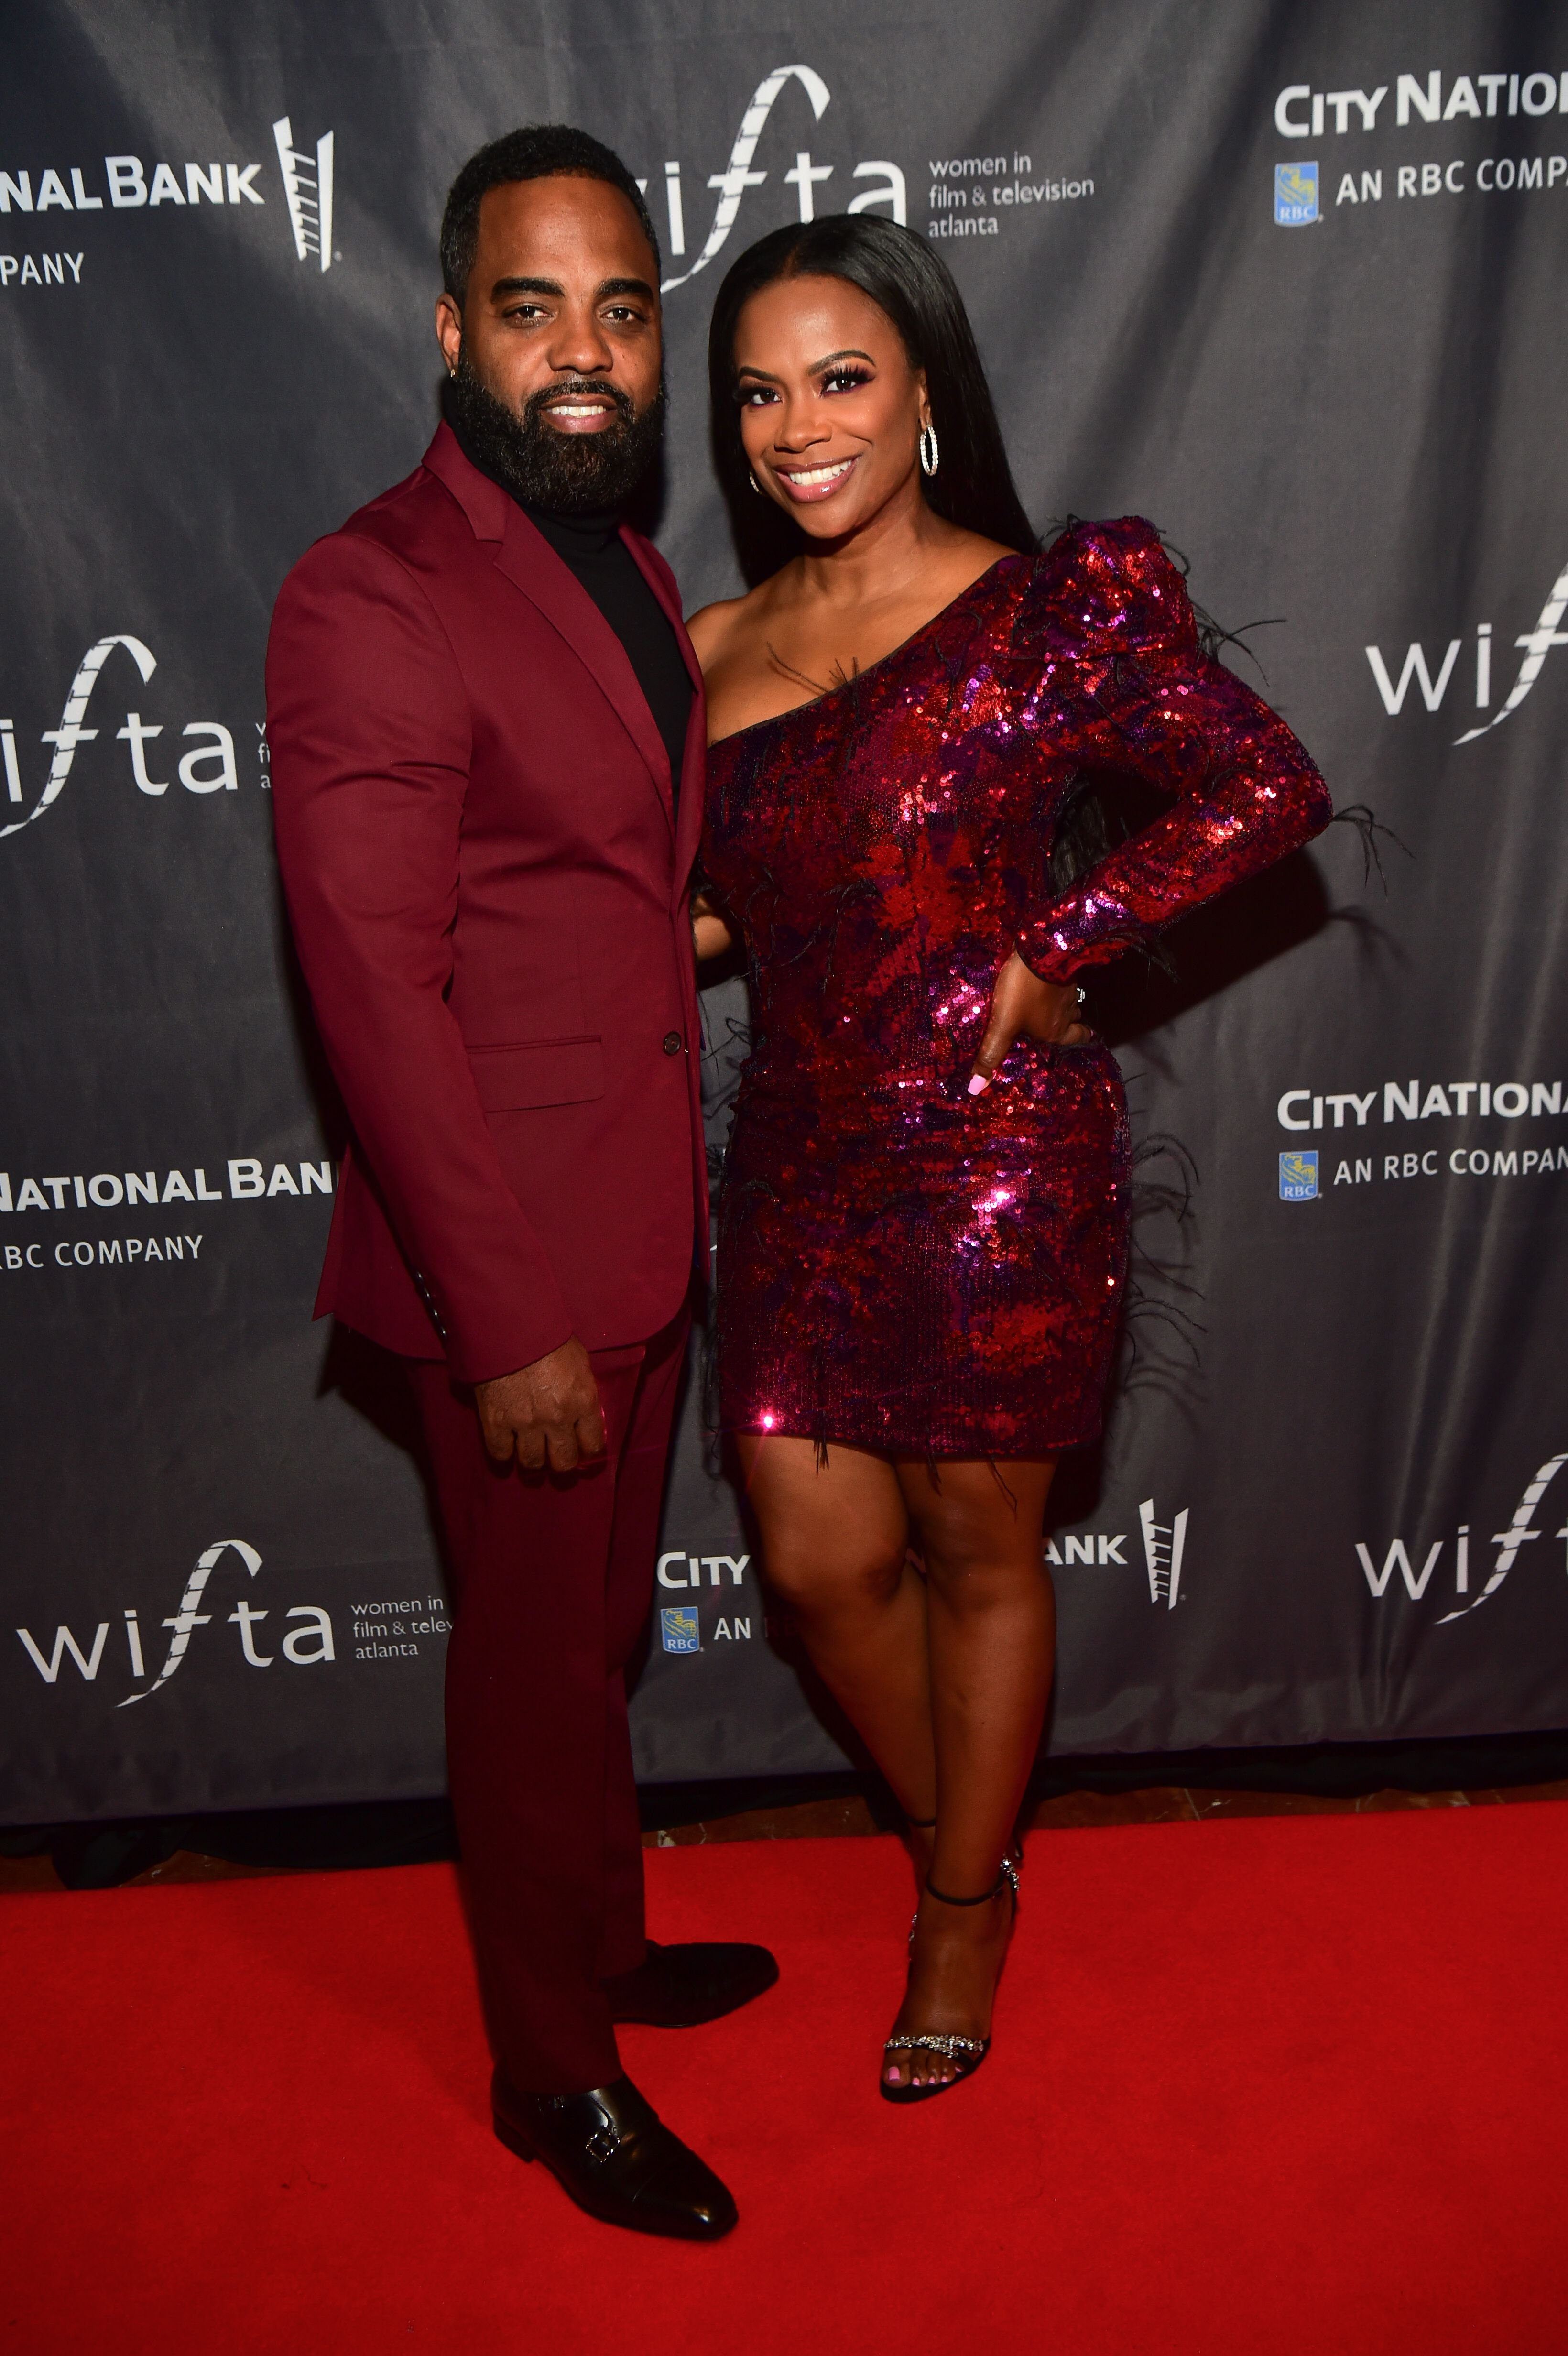 Todd Tucker and Kandi Burruss arrive on the red carpet at The Sneak Peek at Agency Restaurant-Bar on November 9, 2019, in Atlanta, Georgia | Photo: Getty Images